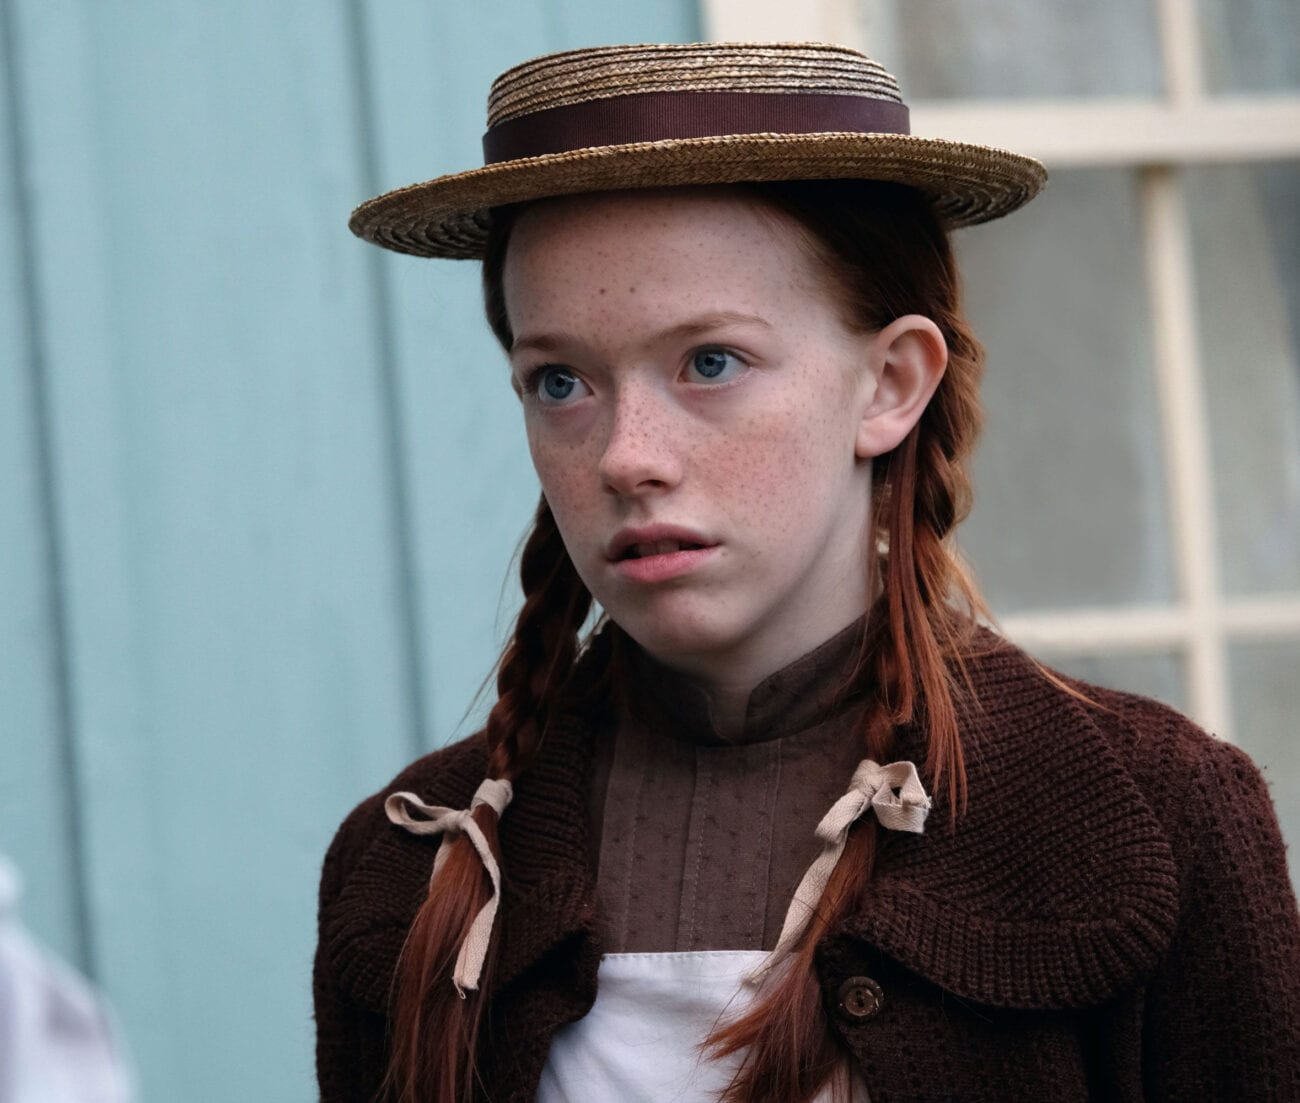 'Anne with an E' was a show which warmed the hearts of many, many people. Here's why we want the cast to return and how to make it happen.